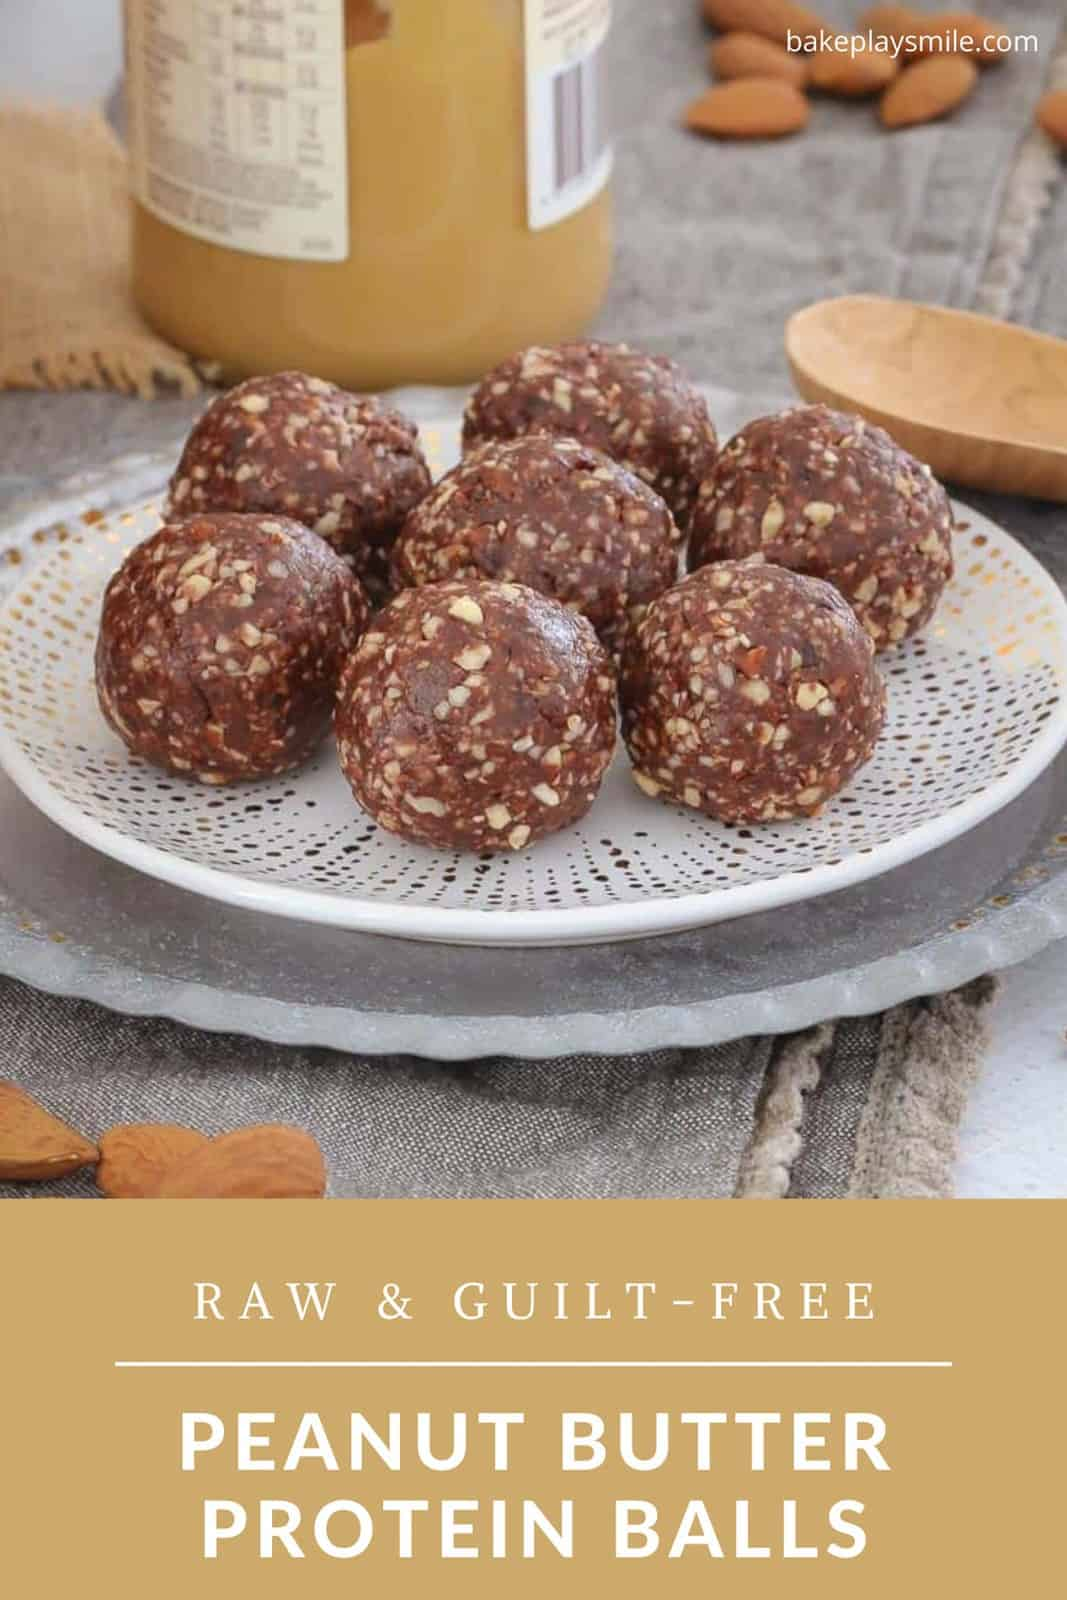 Peanut Butter Protein Balls Bake Play Smile